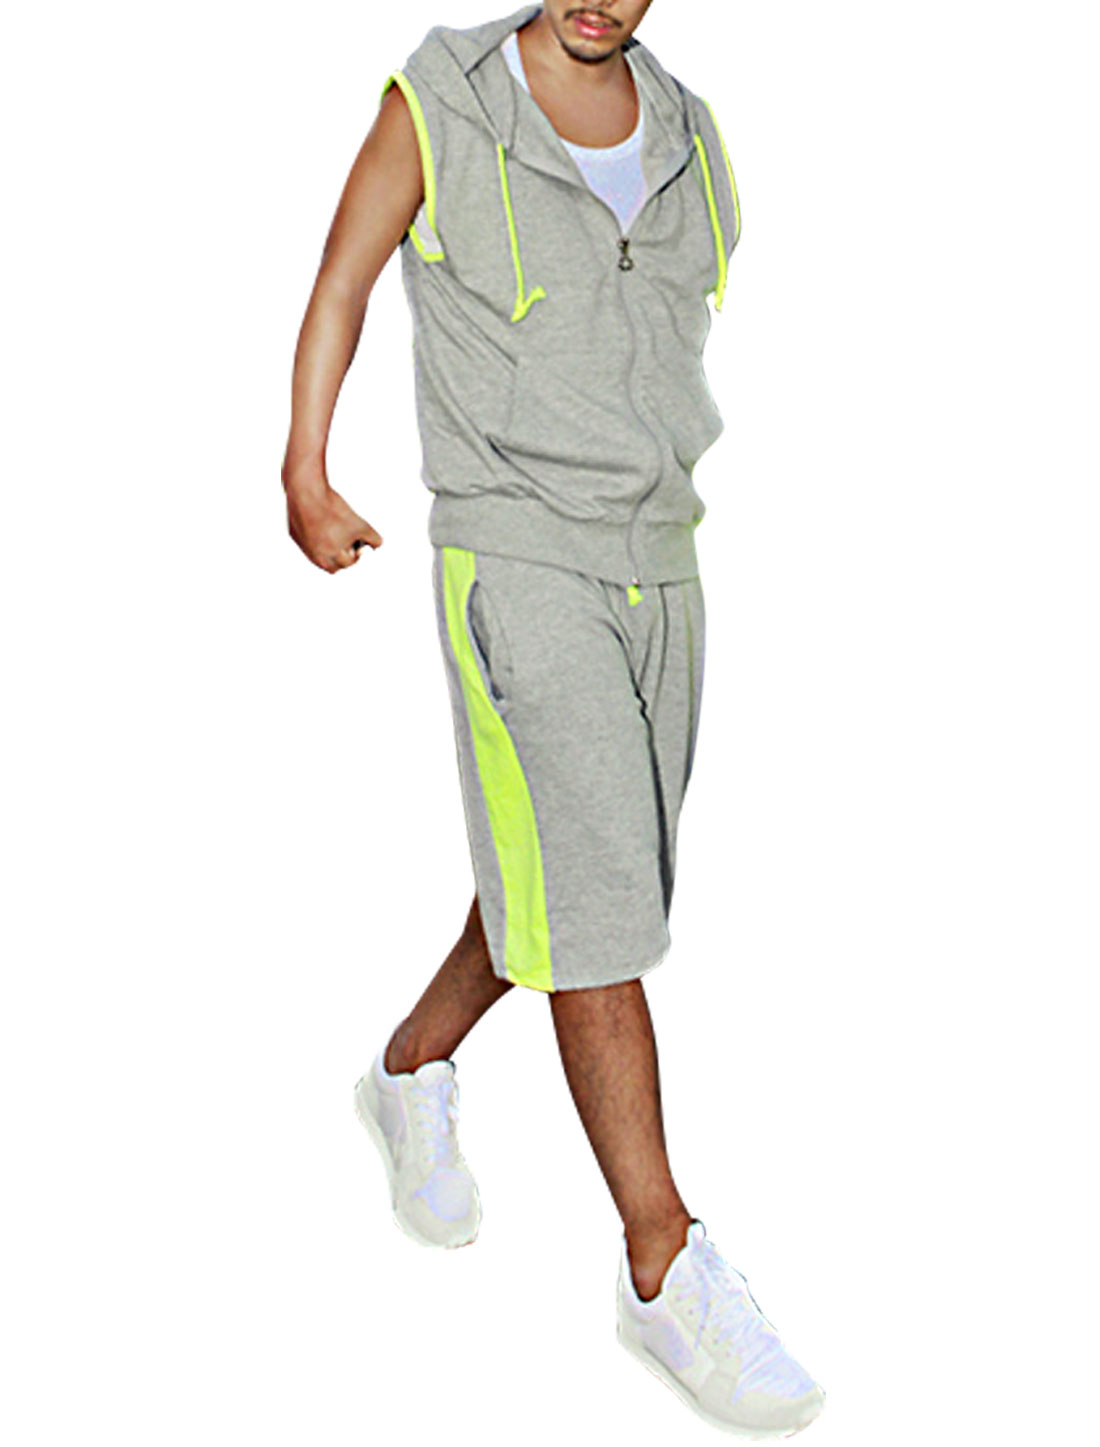 Men Zip Up Front Hoody w Stretchy Shorts Heather Gray Fluorescein M